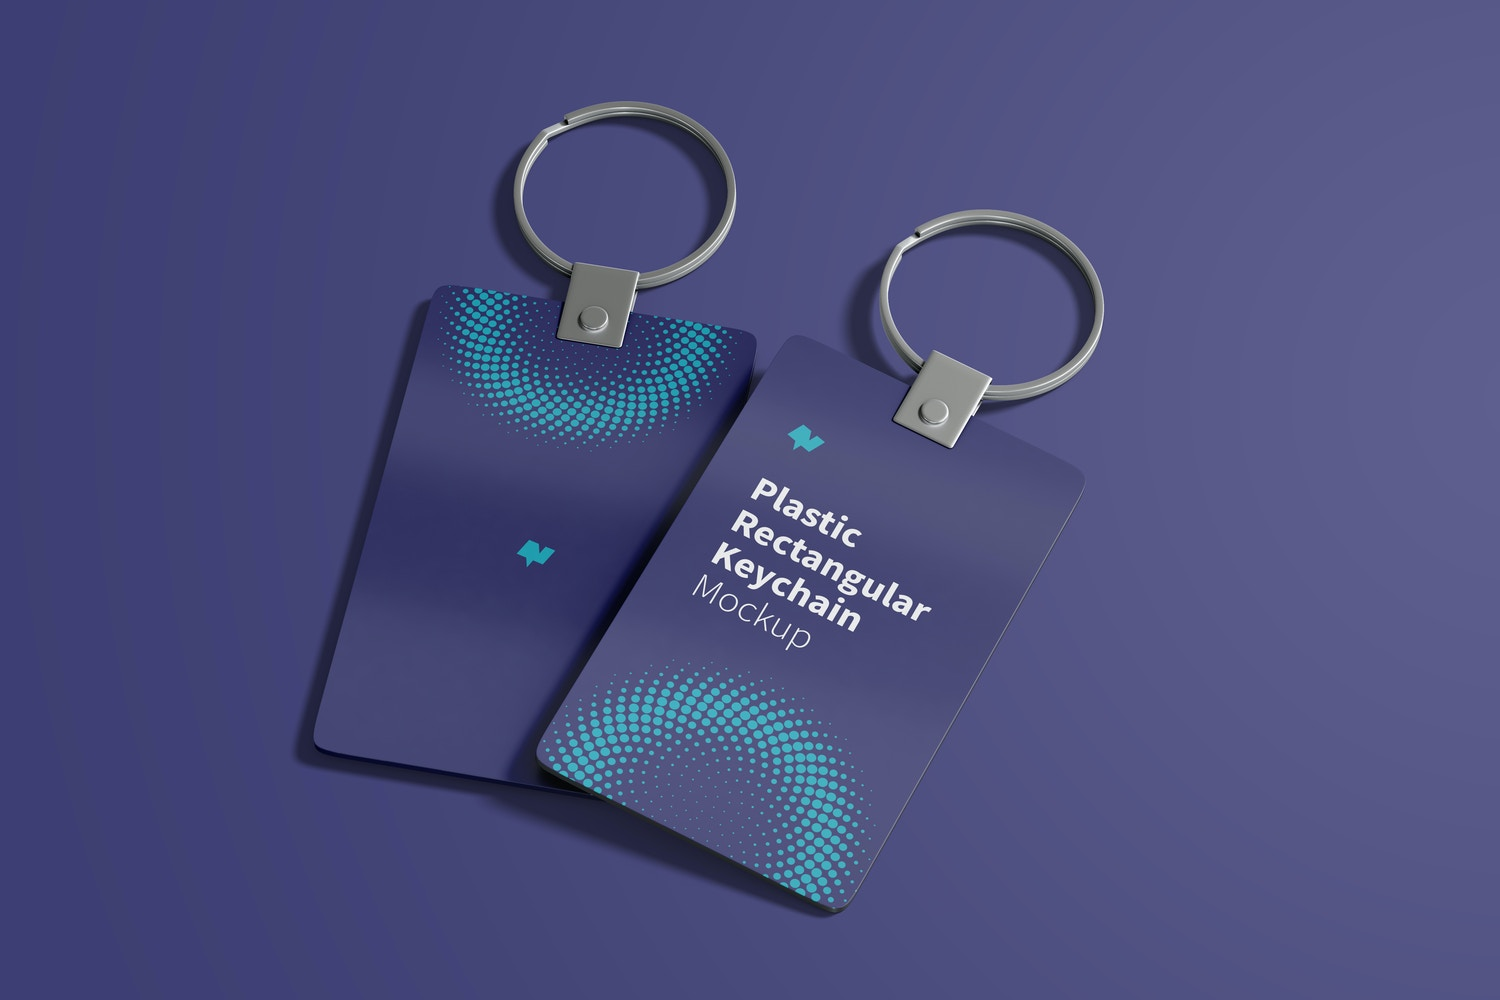 Take advantage of this perspective and show two angles of the keychains and your design.